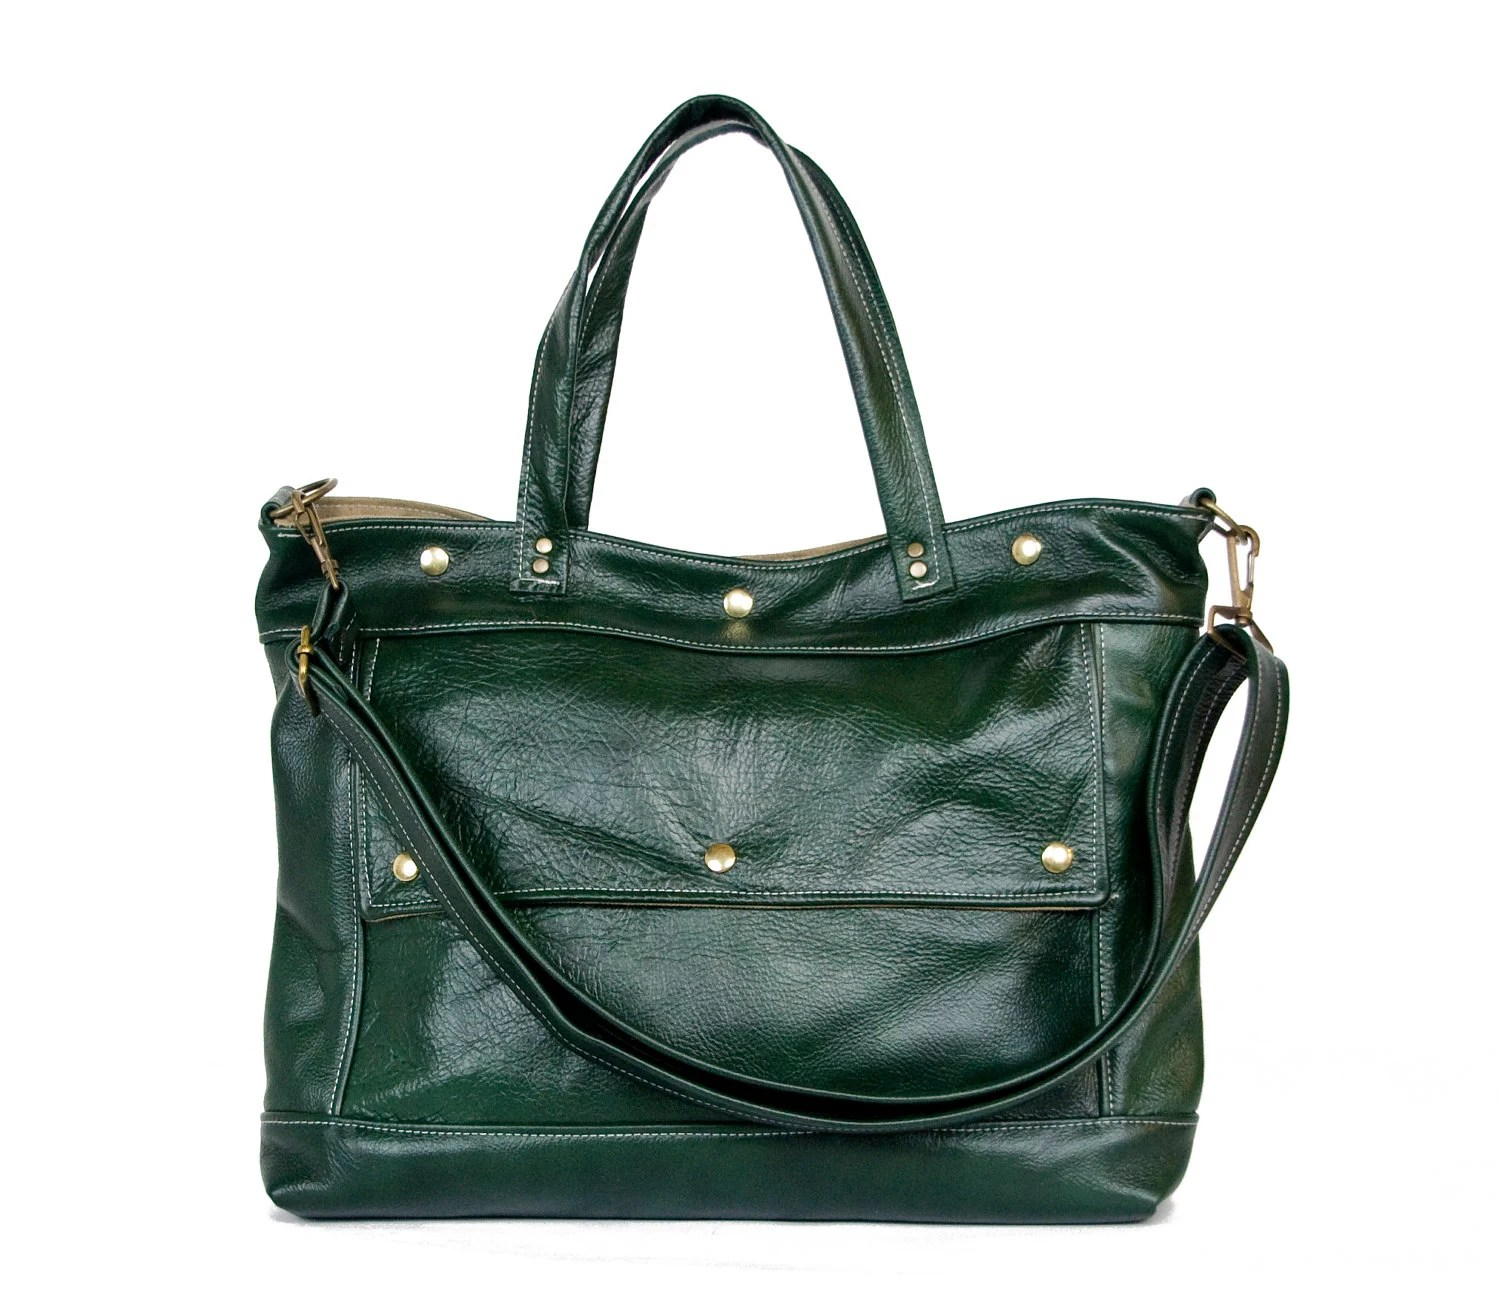 Archive Bag in Winter Green Leather - Made to Order